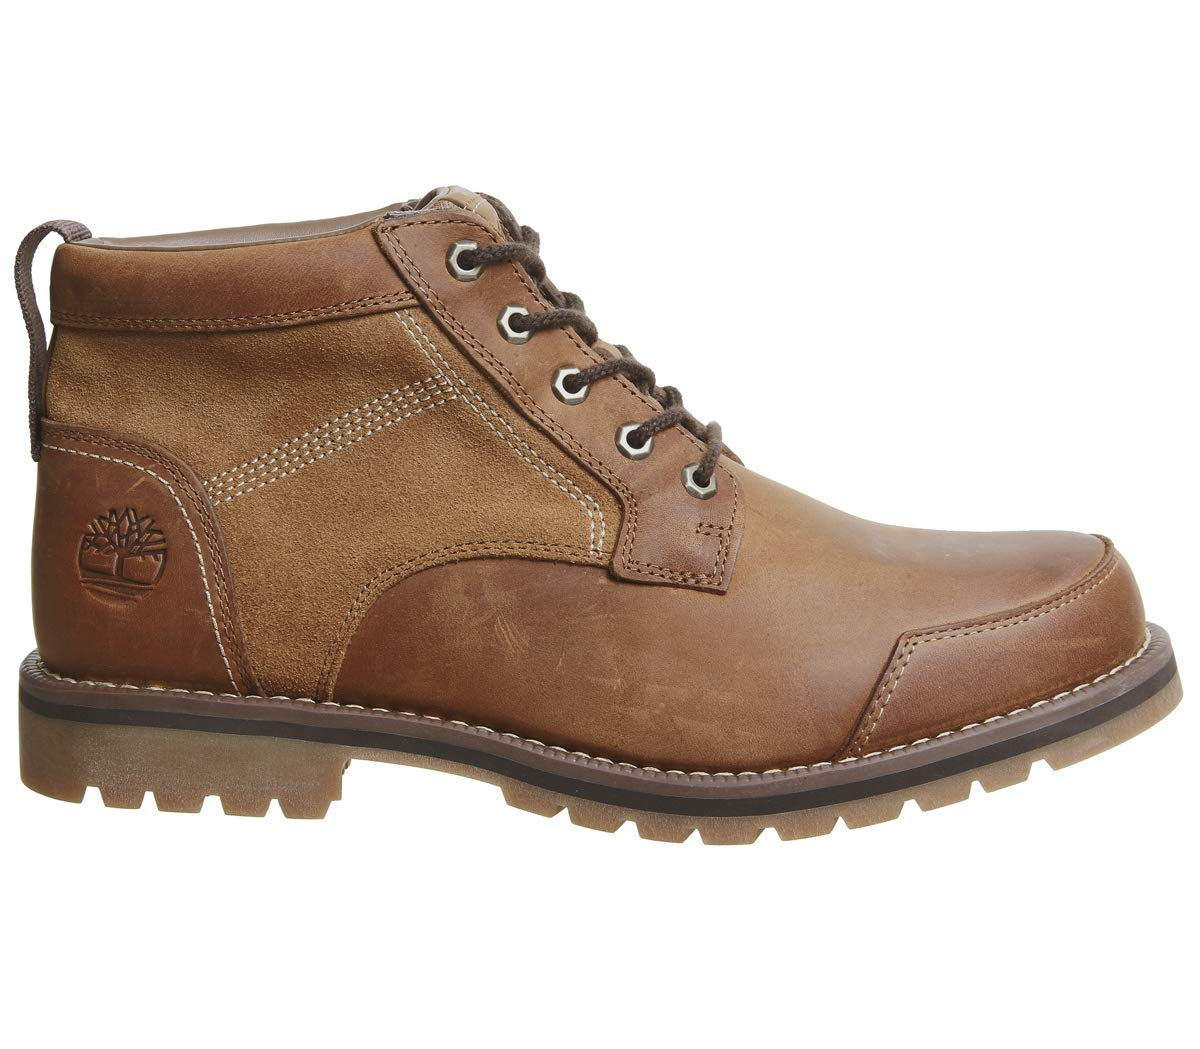 Timberland Online LarchmontMen's Oxford Buy In Qatar ukXPZi